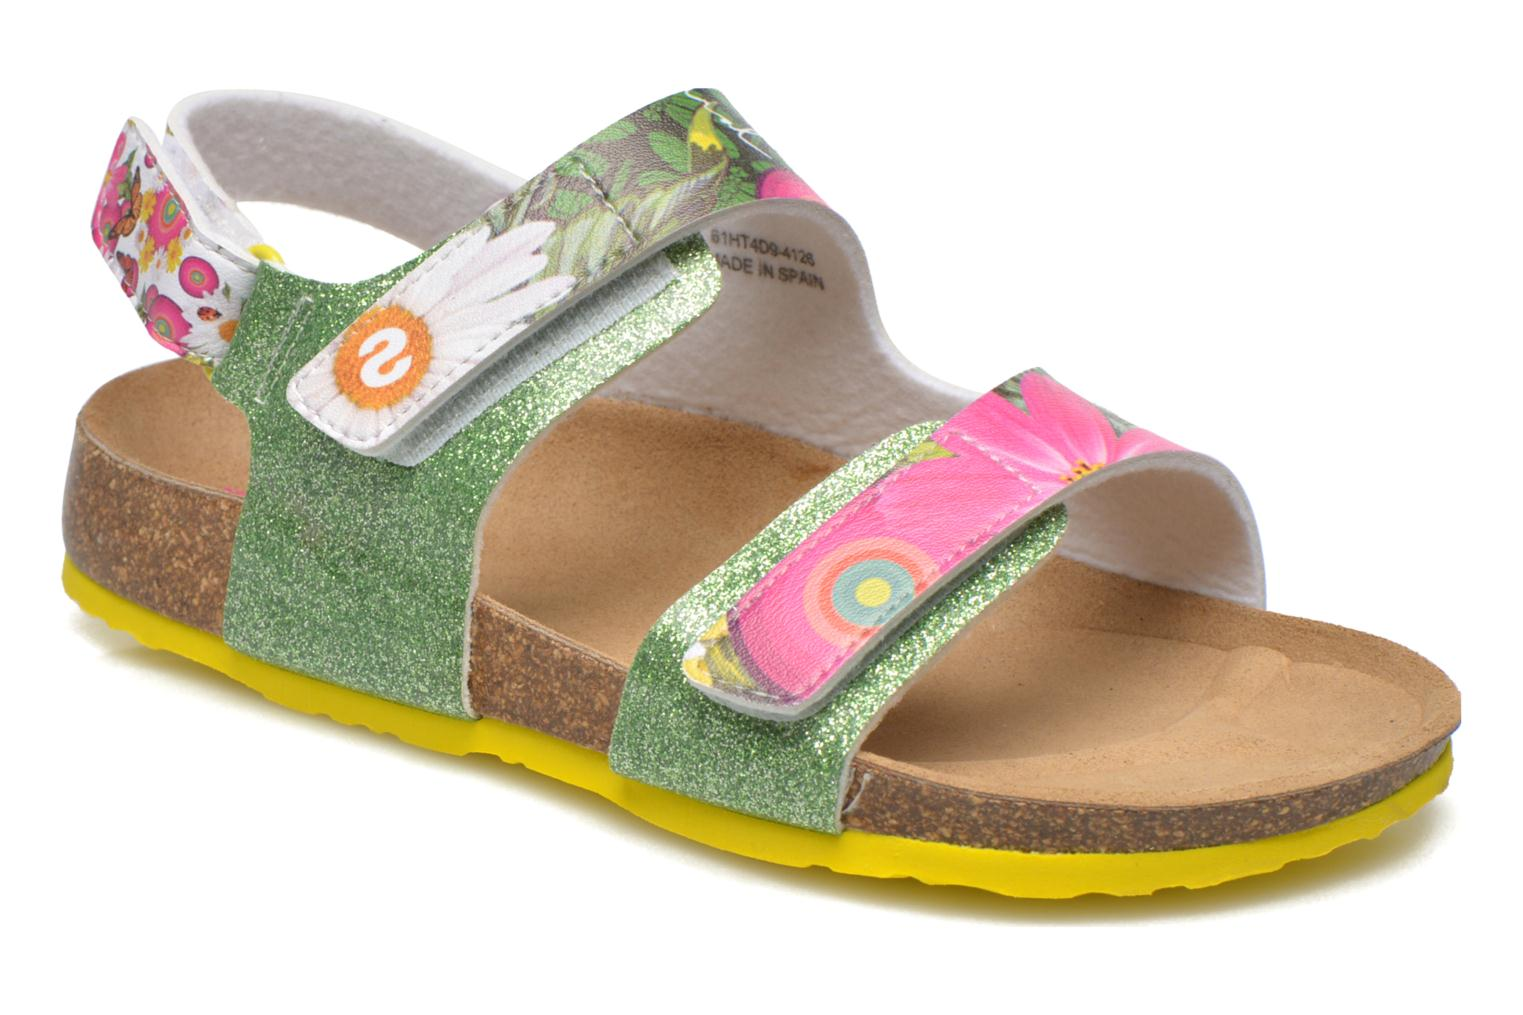 SHOES_BIO 2 E 4126 GREEN SHEEN